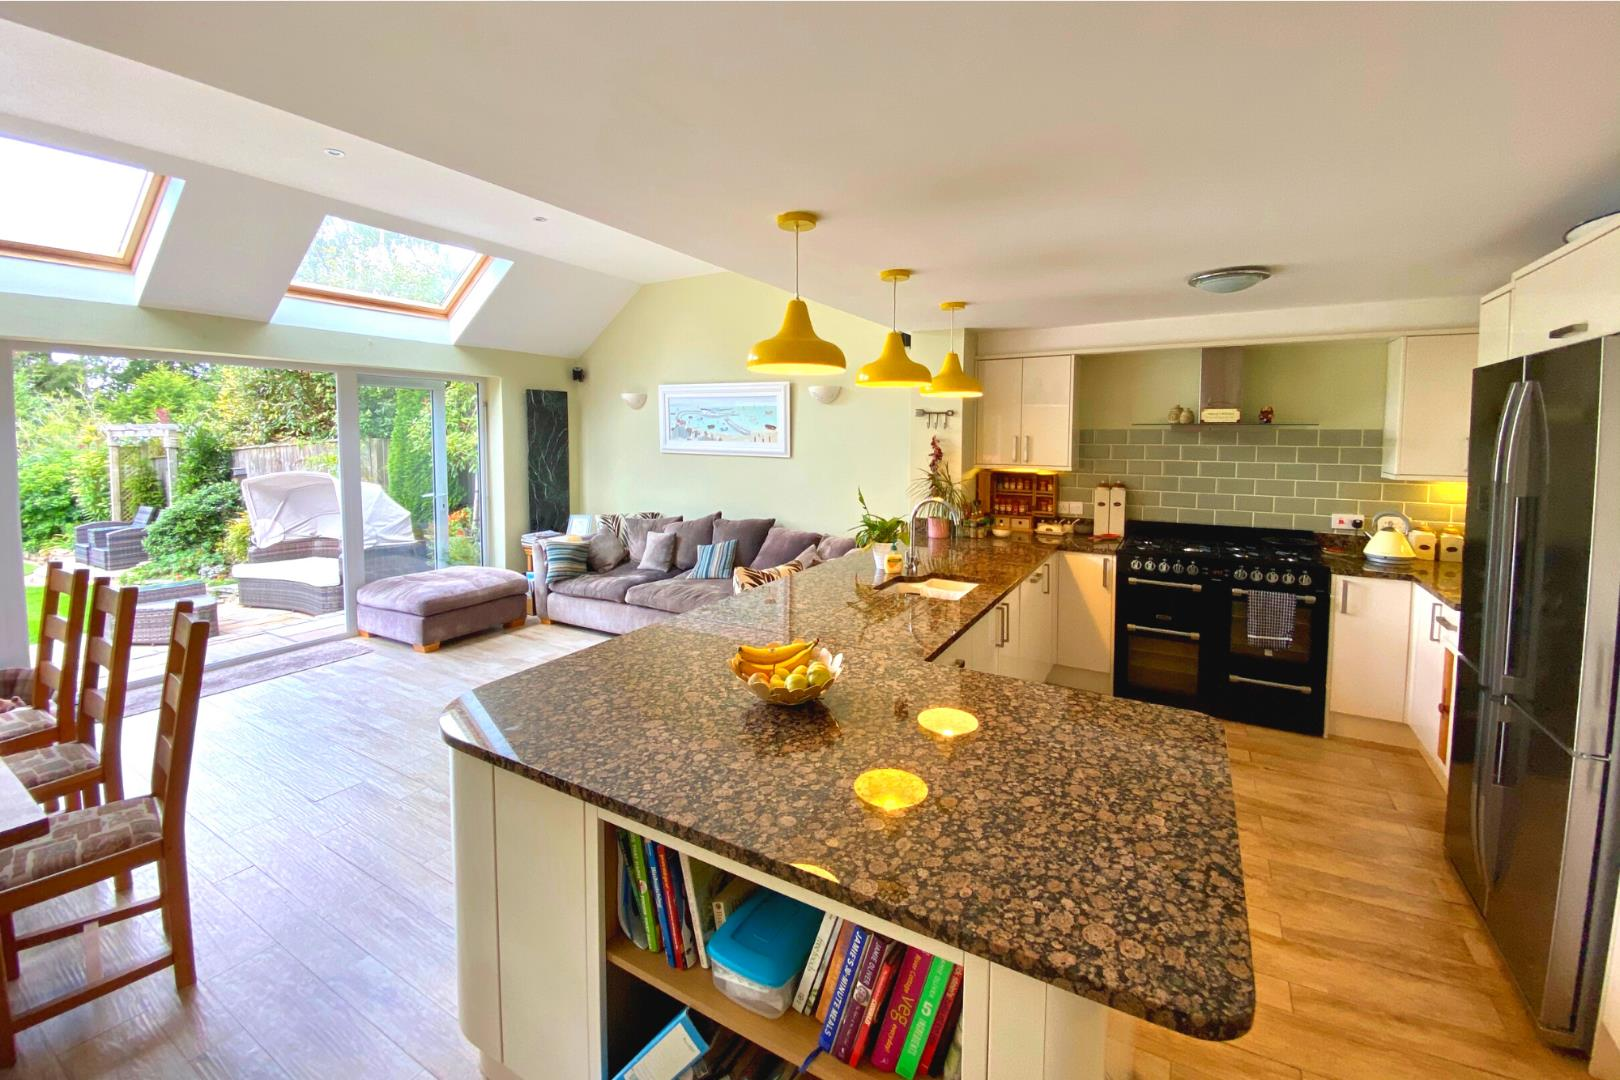 3 bed house for sale in Church Crookham  - Property Image 15